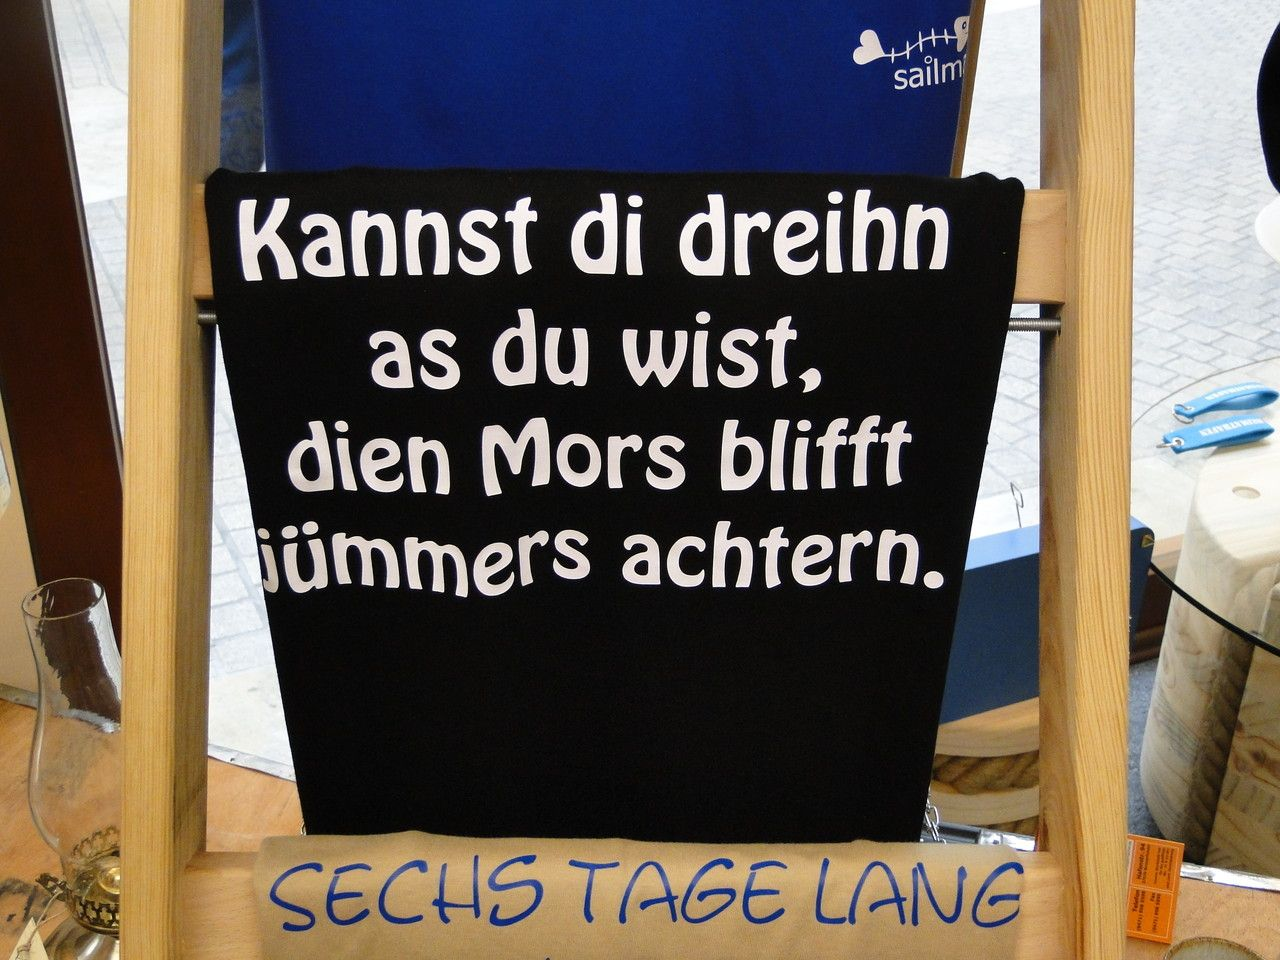 tshirts special edition spr che plattdeutsch spr che. Black Bedroom Furniture Sets. Home Design Ideas